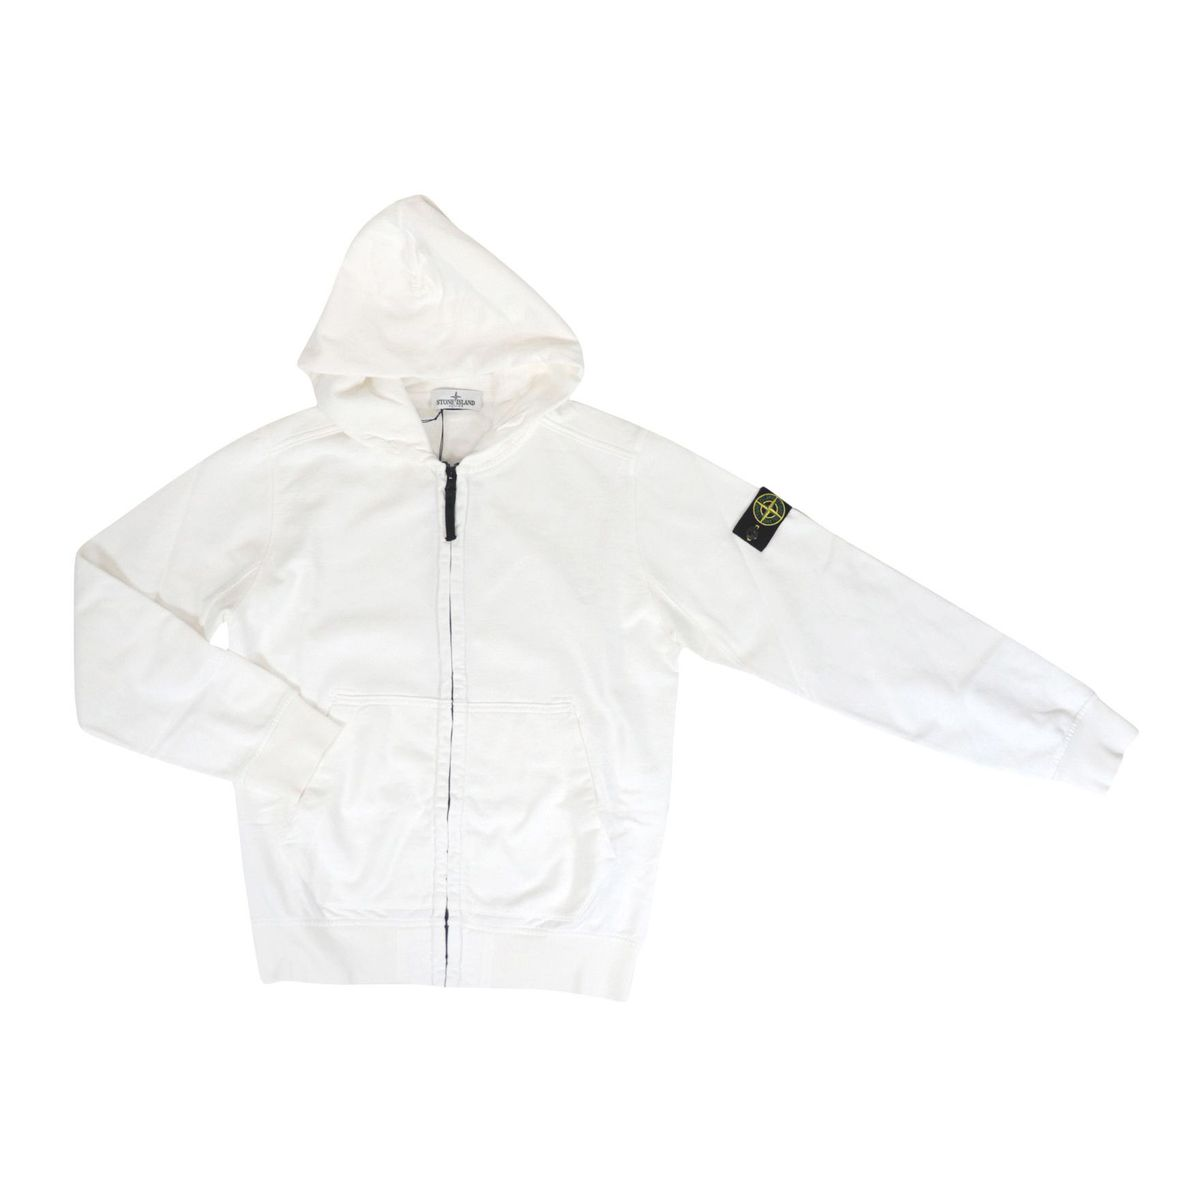 Full zip cotton sweatshirt with hood and logo patch on the sleeve White STONE ISLAND JUNIOR